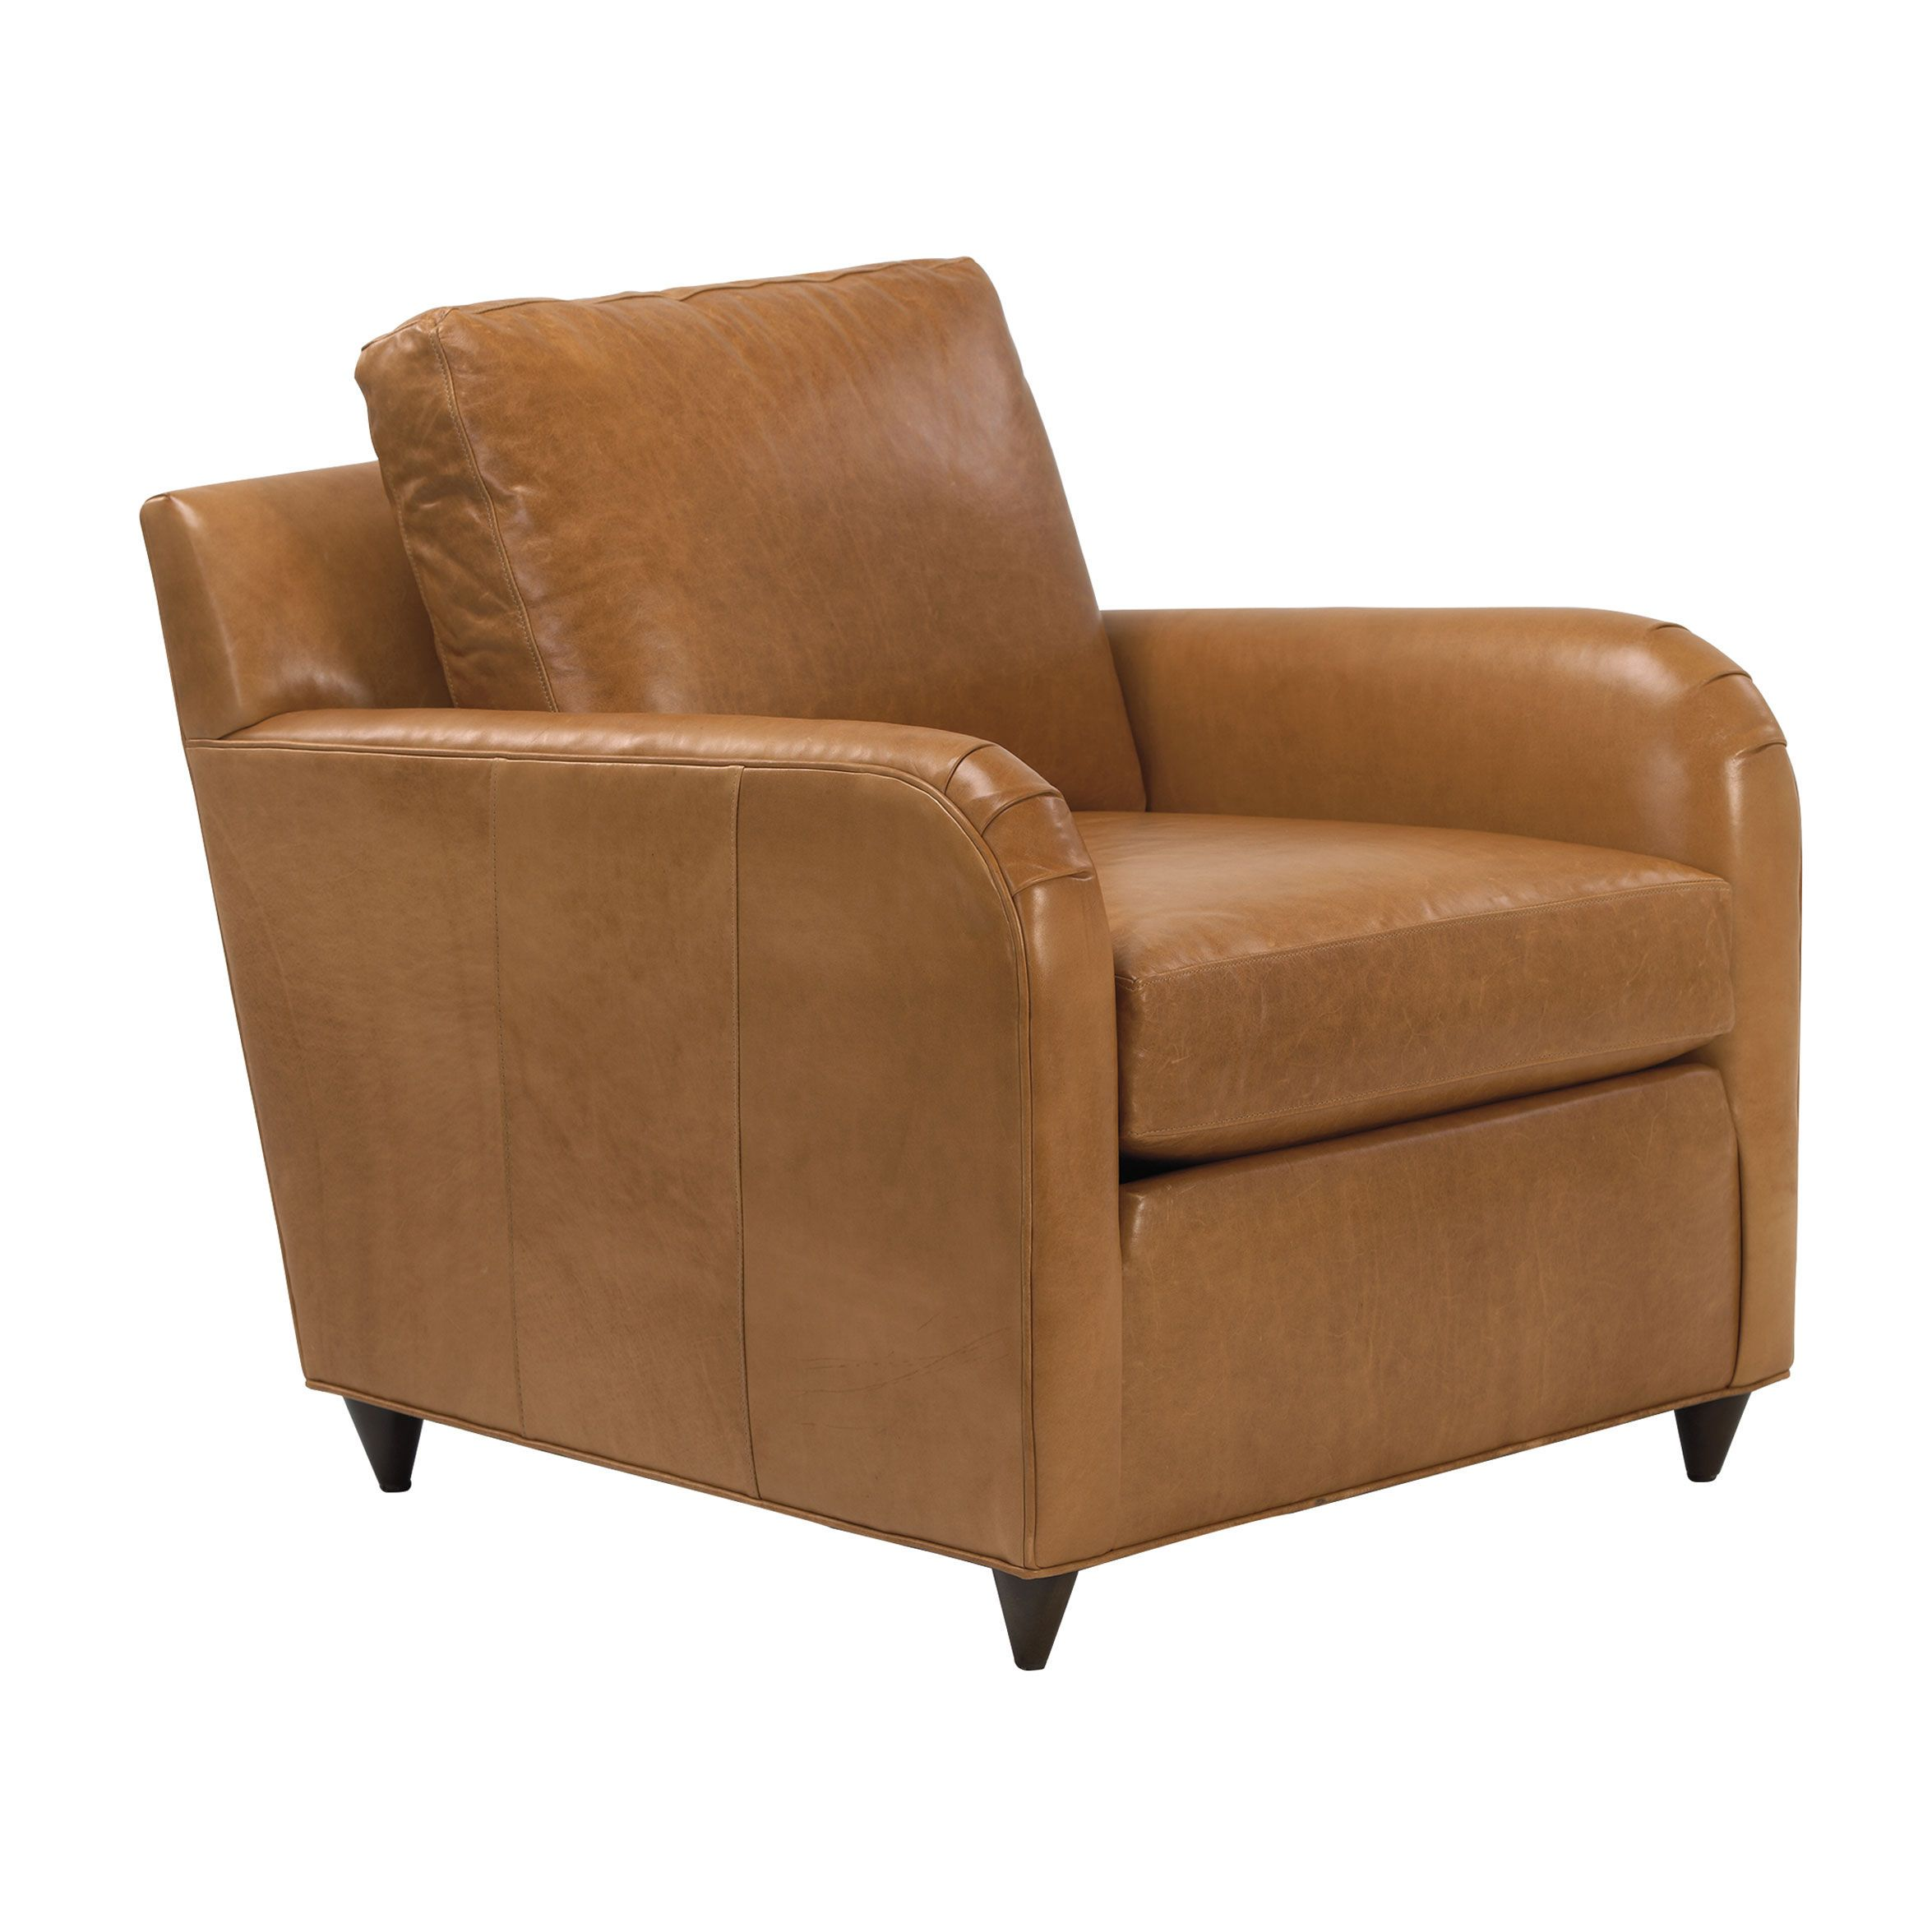 Fall Introductions  Greggy Leather Chair, Astor/Fawn   Ethan Allen US